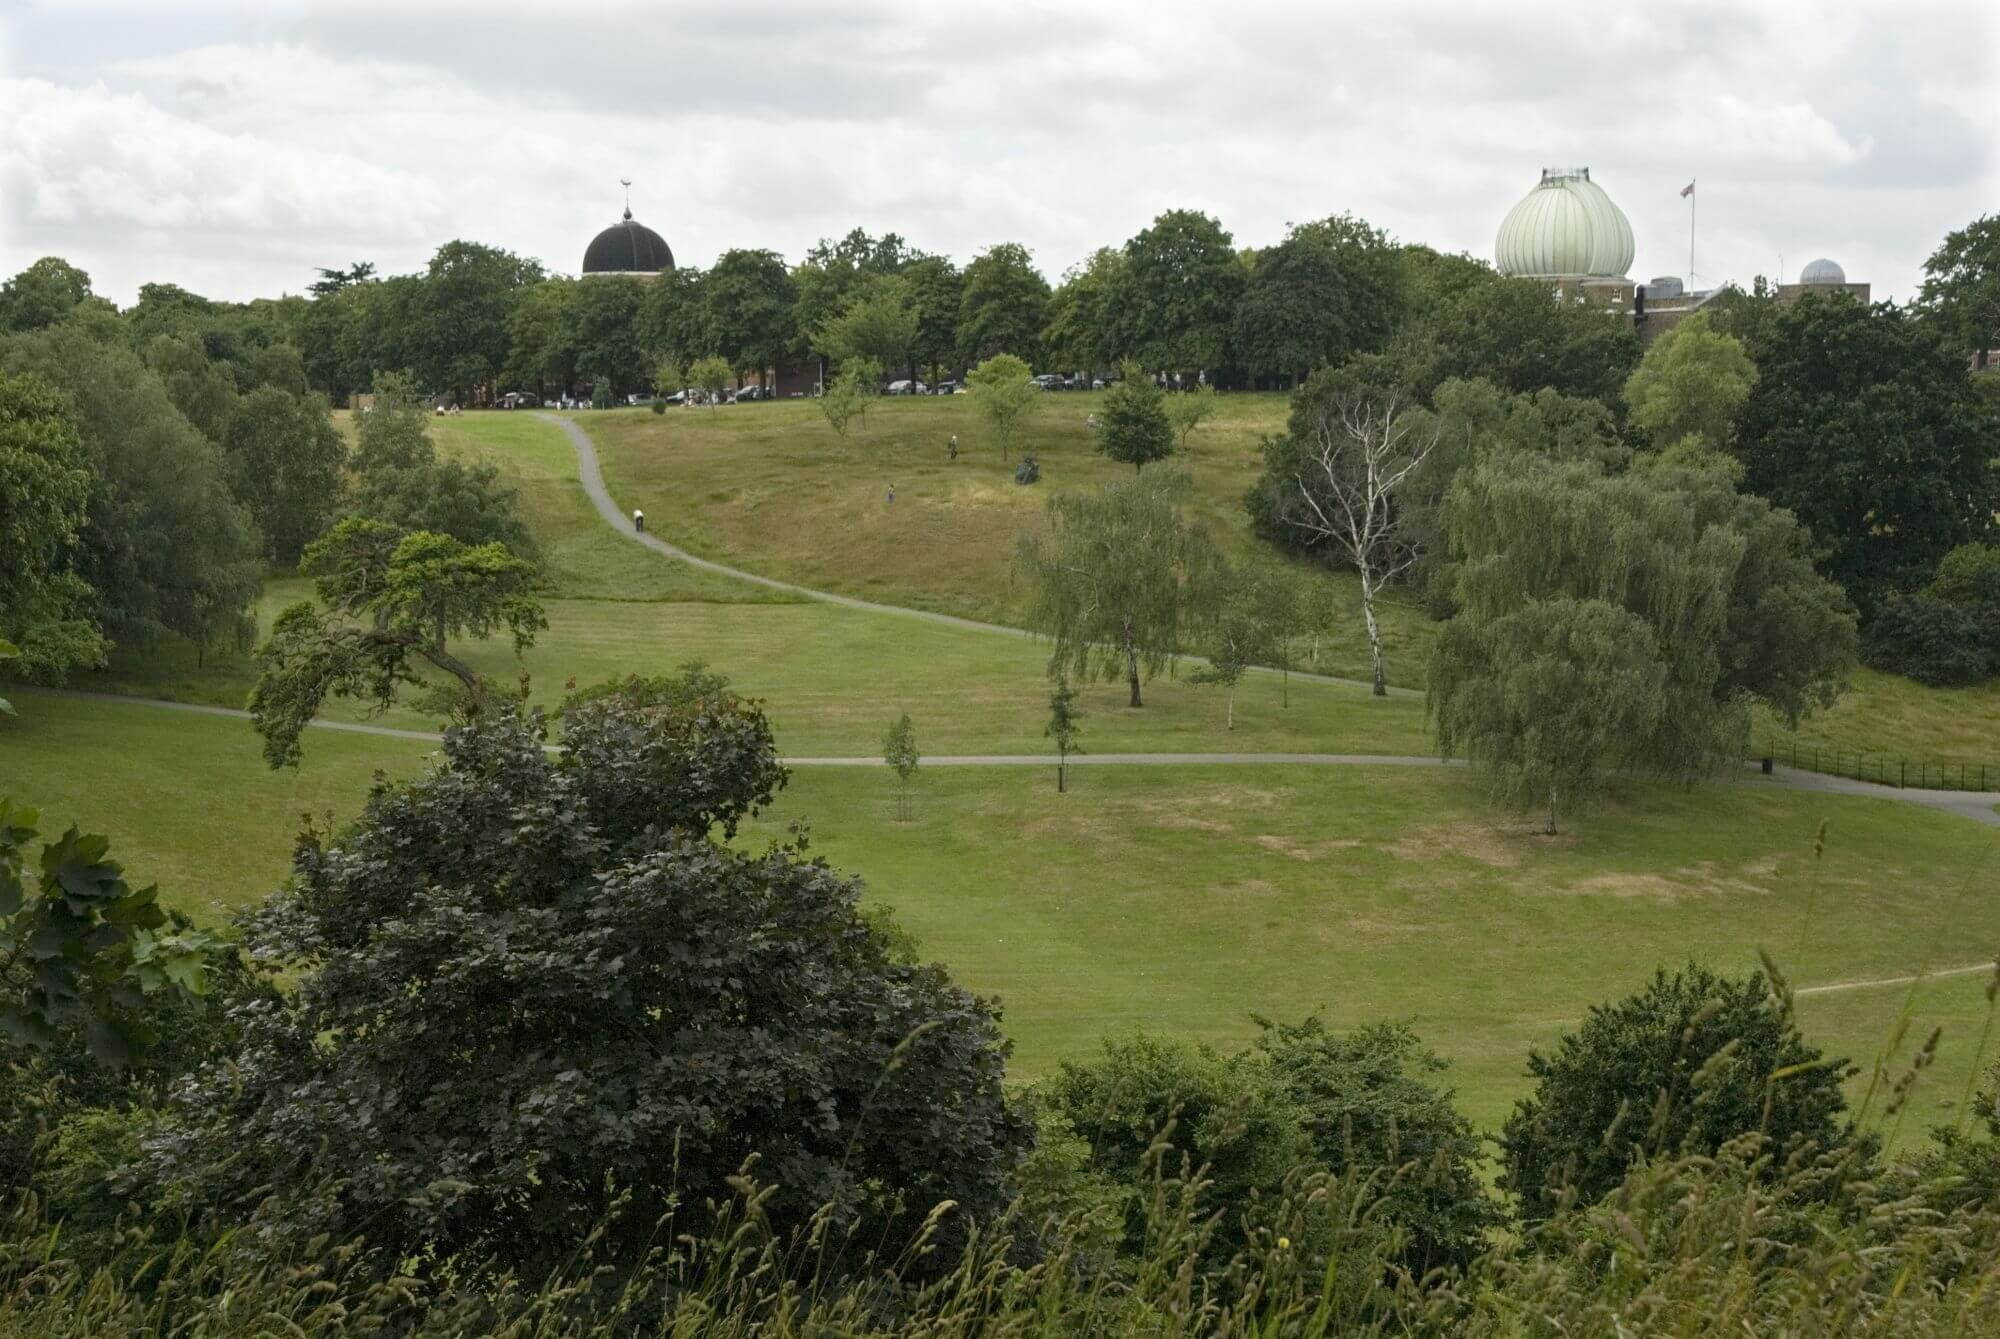 One Tree Hill, Greenwich Park.